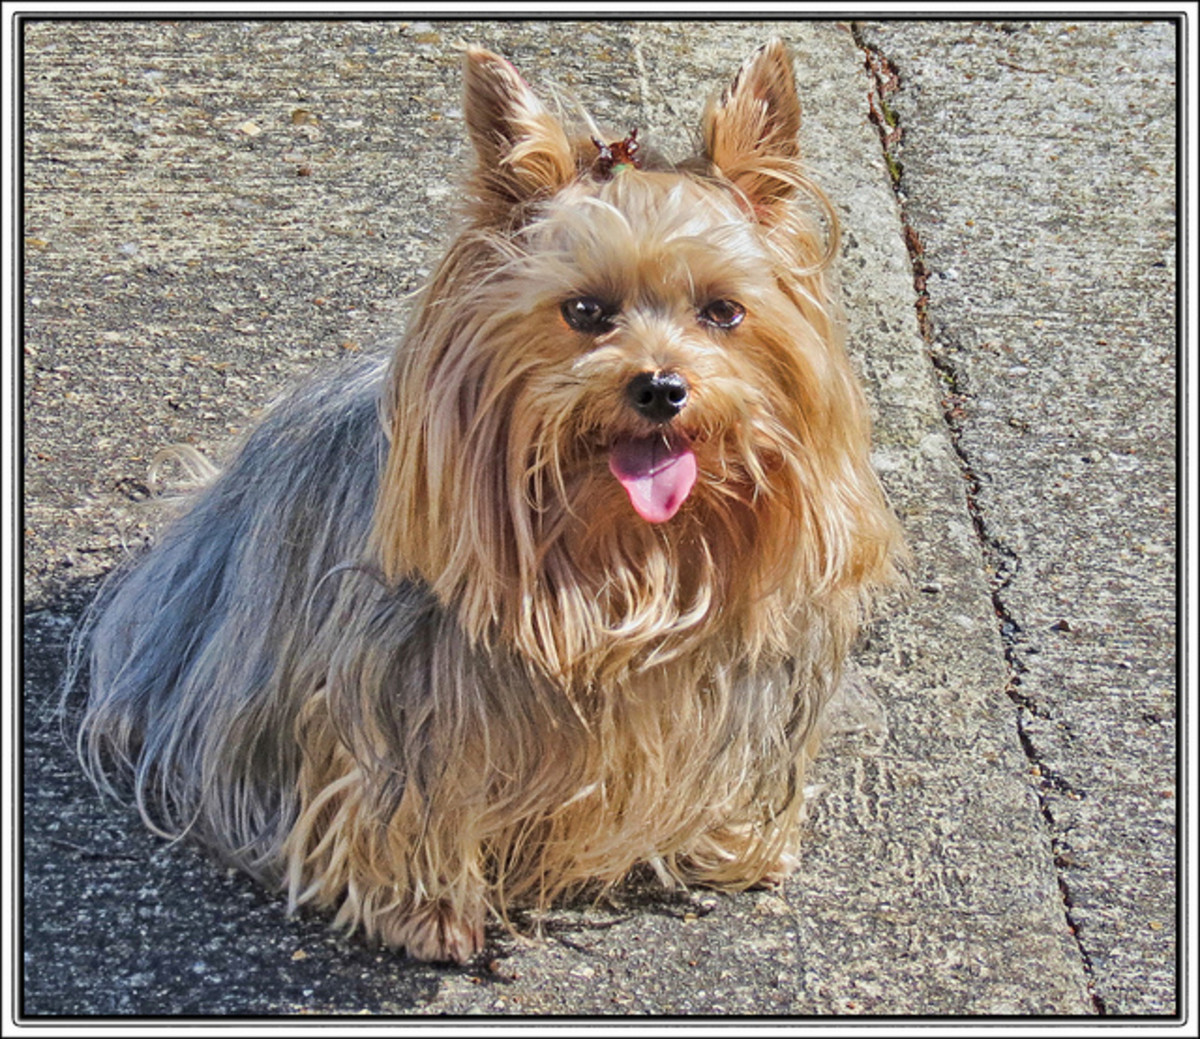 Even with long hair, Yorkshire Terriers look tiny.